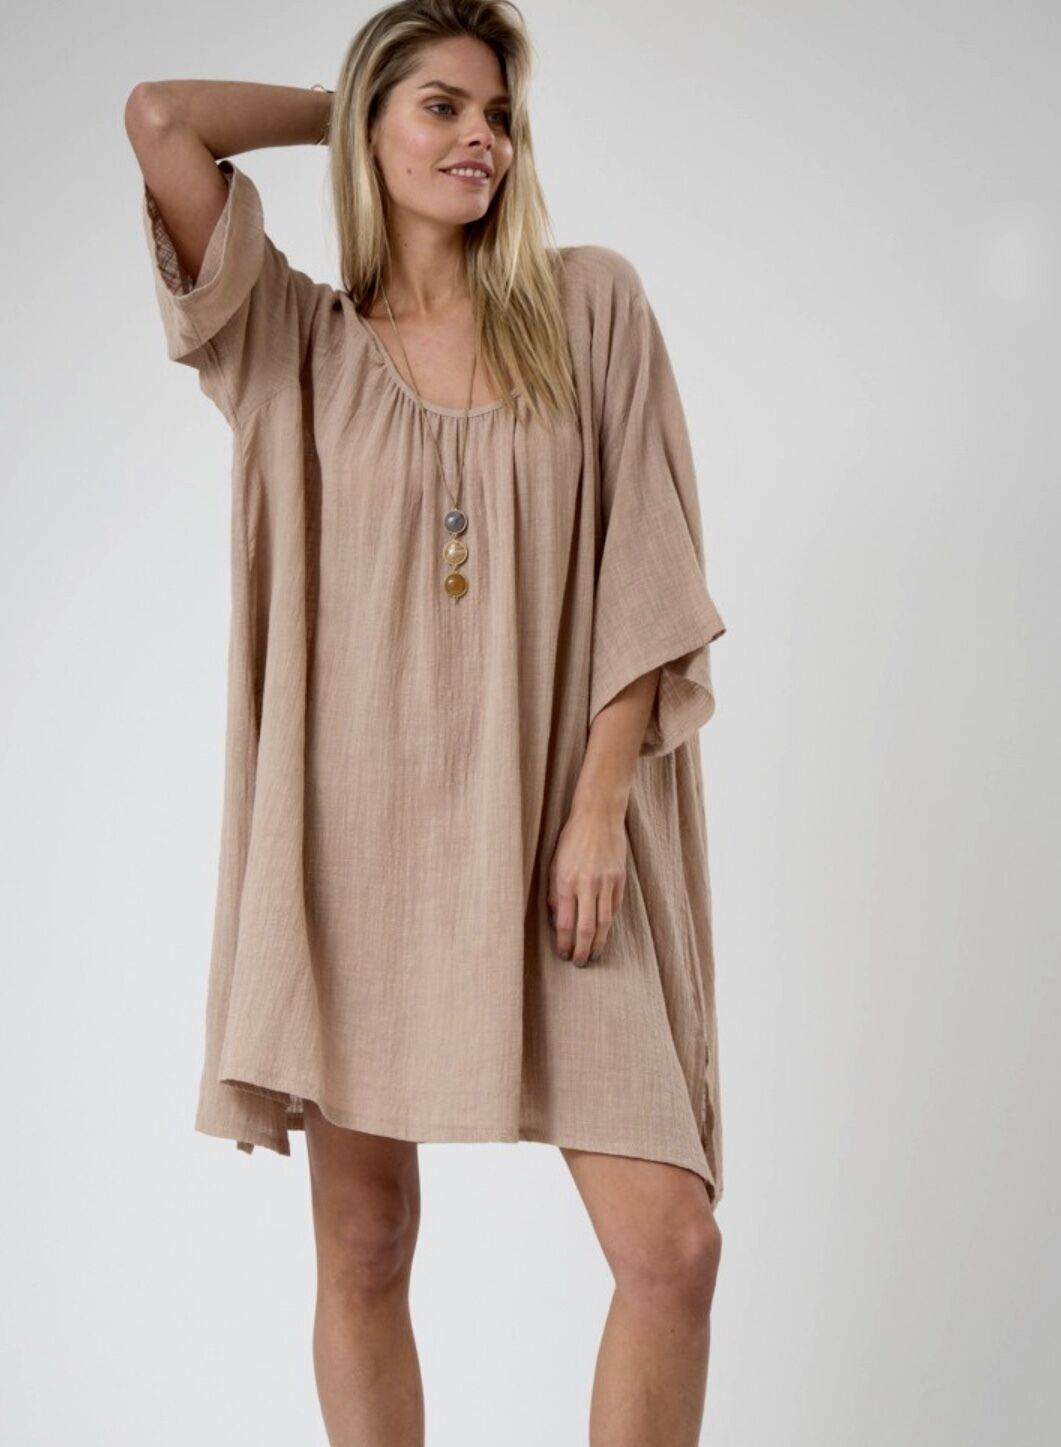 NEW nude tan Gauze Oversized Swing Tunic Dress semi sheer wide sleeves M